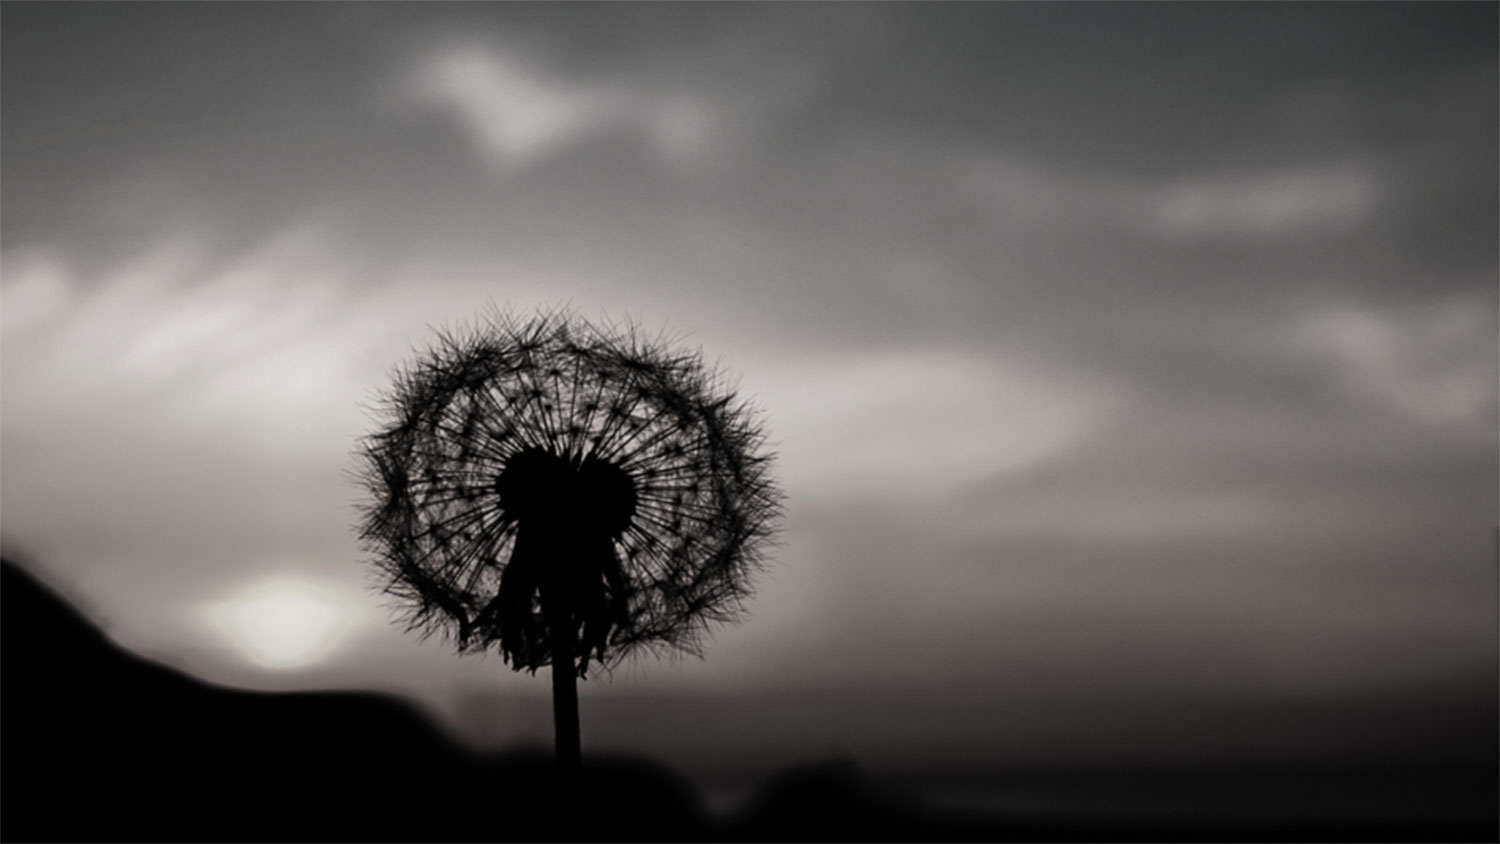 black and white photo of a dandelion against a cloudy sky